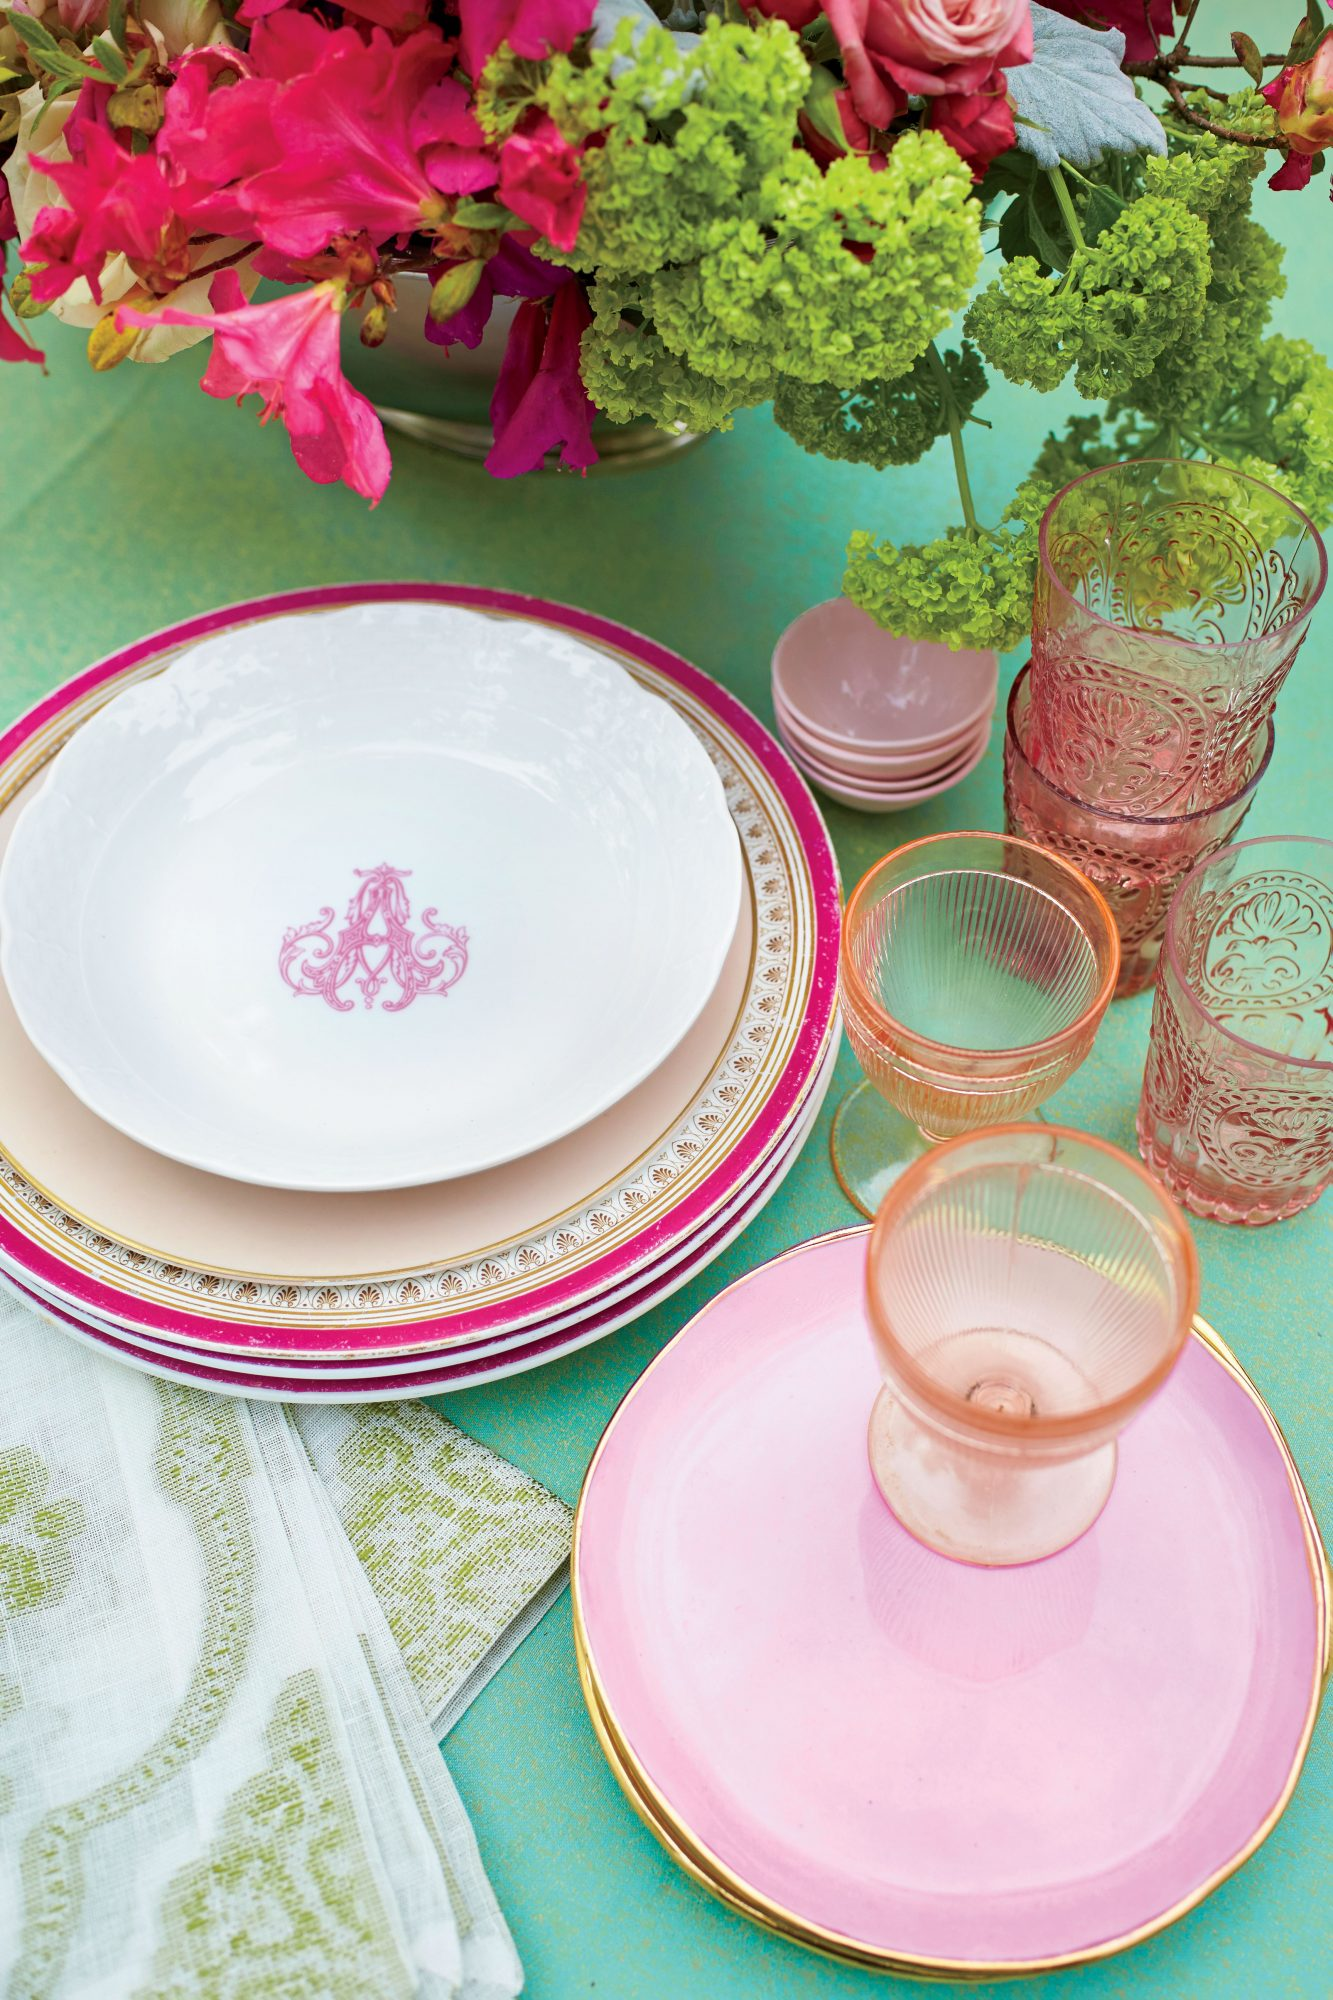 Azalea Flower Spring Party Place Setting